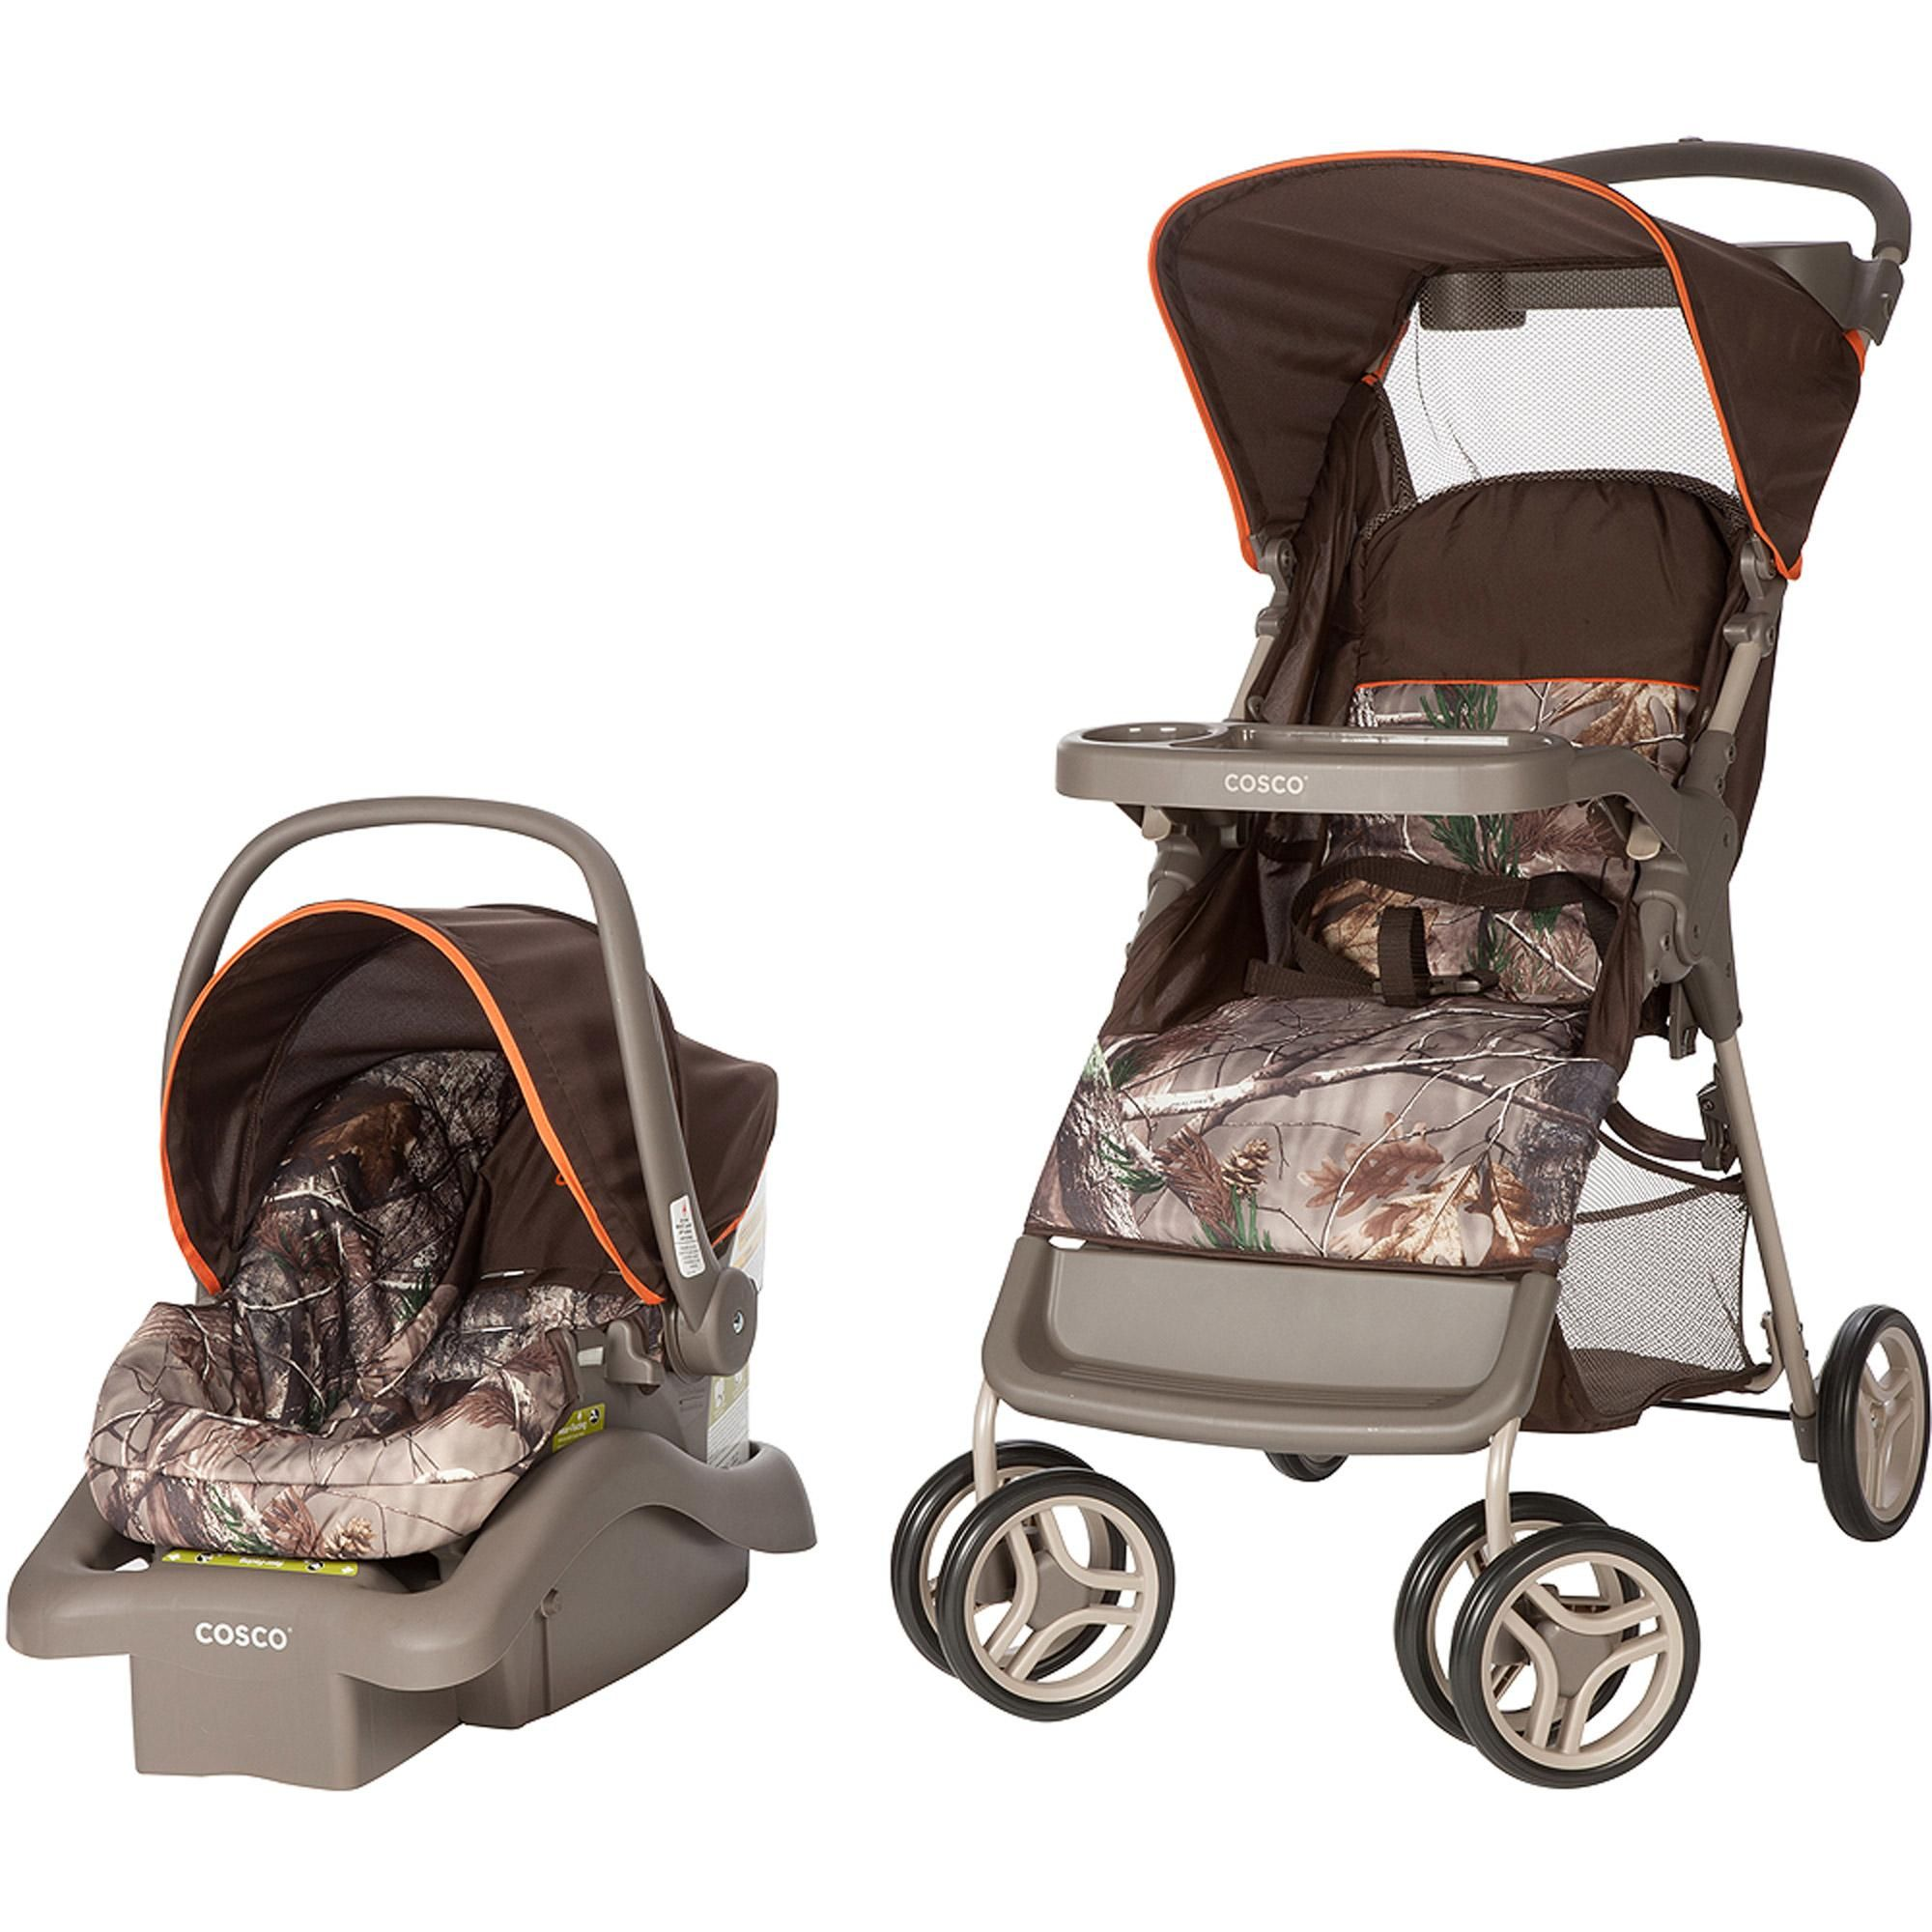 c305b4ec6706c Cosco Lift and Stroll Travel System